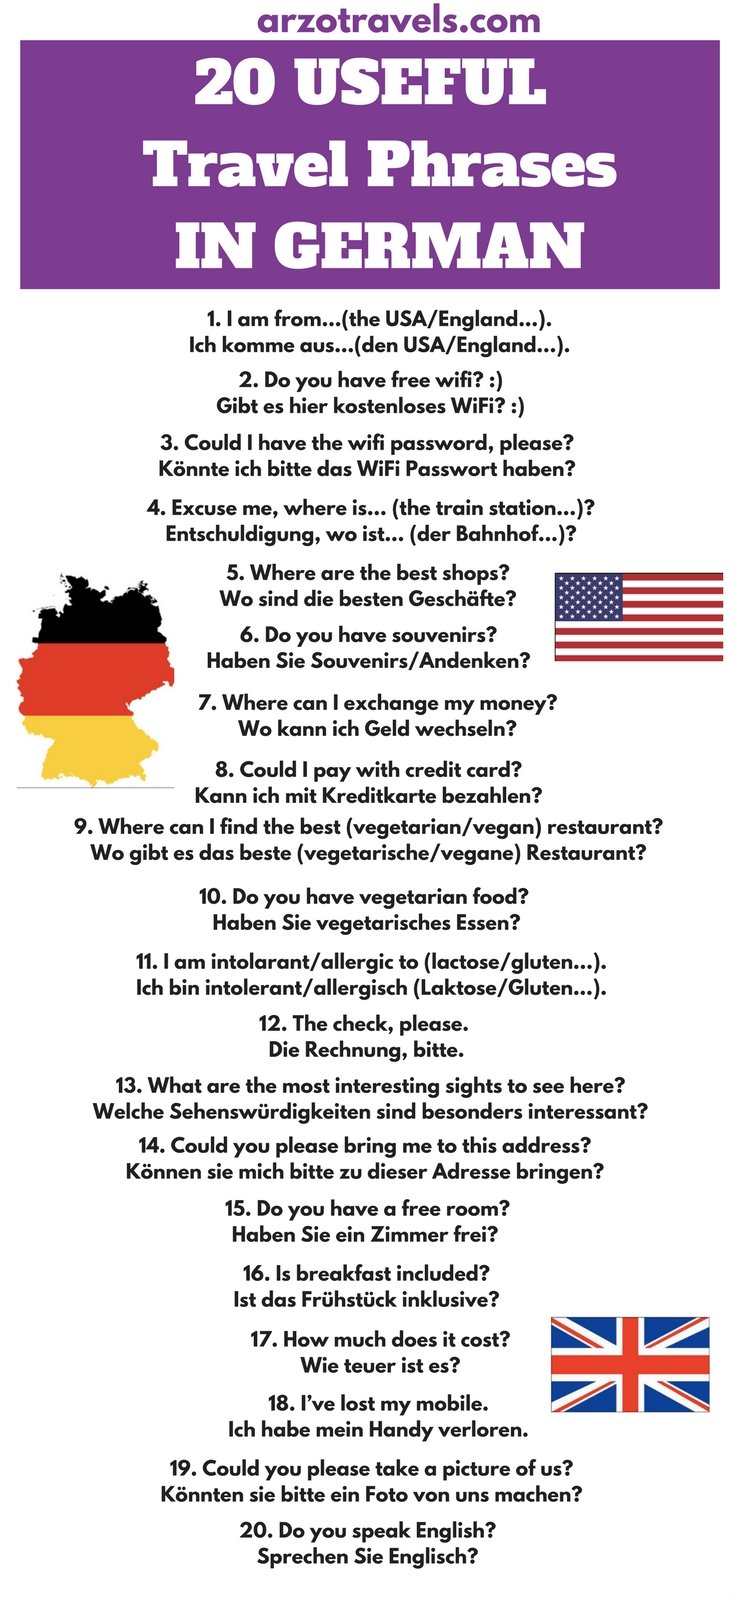 20 useful travel phrases in German-2